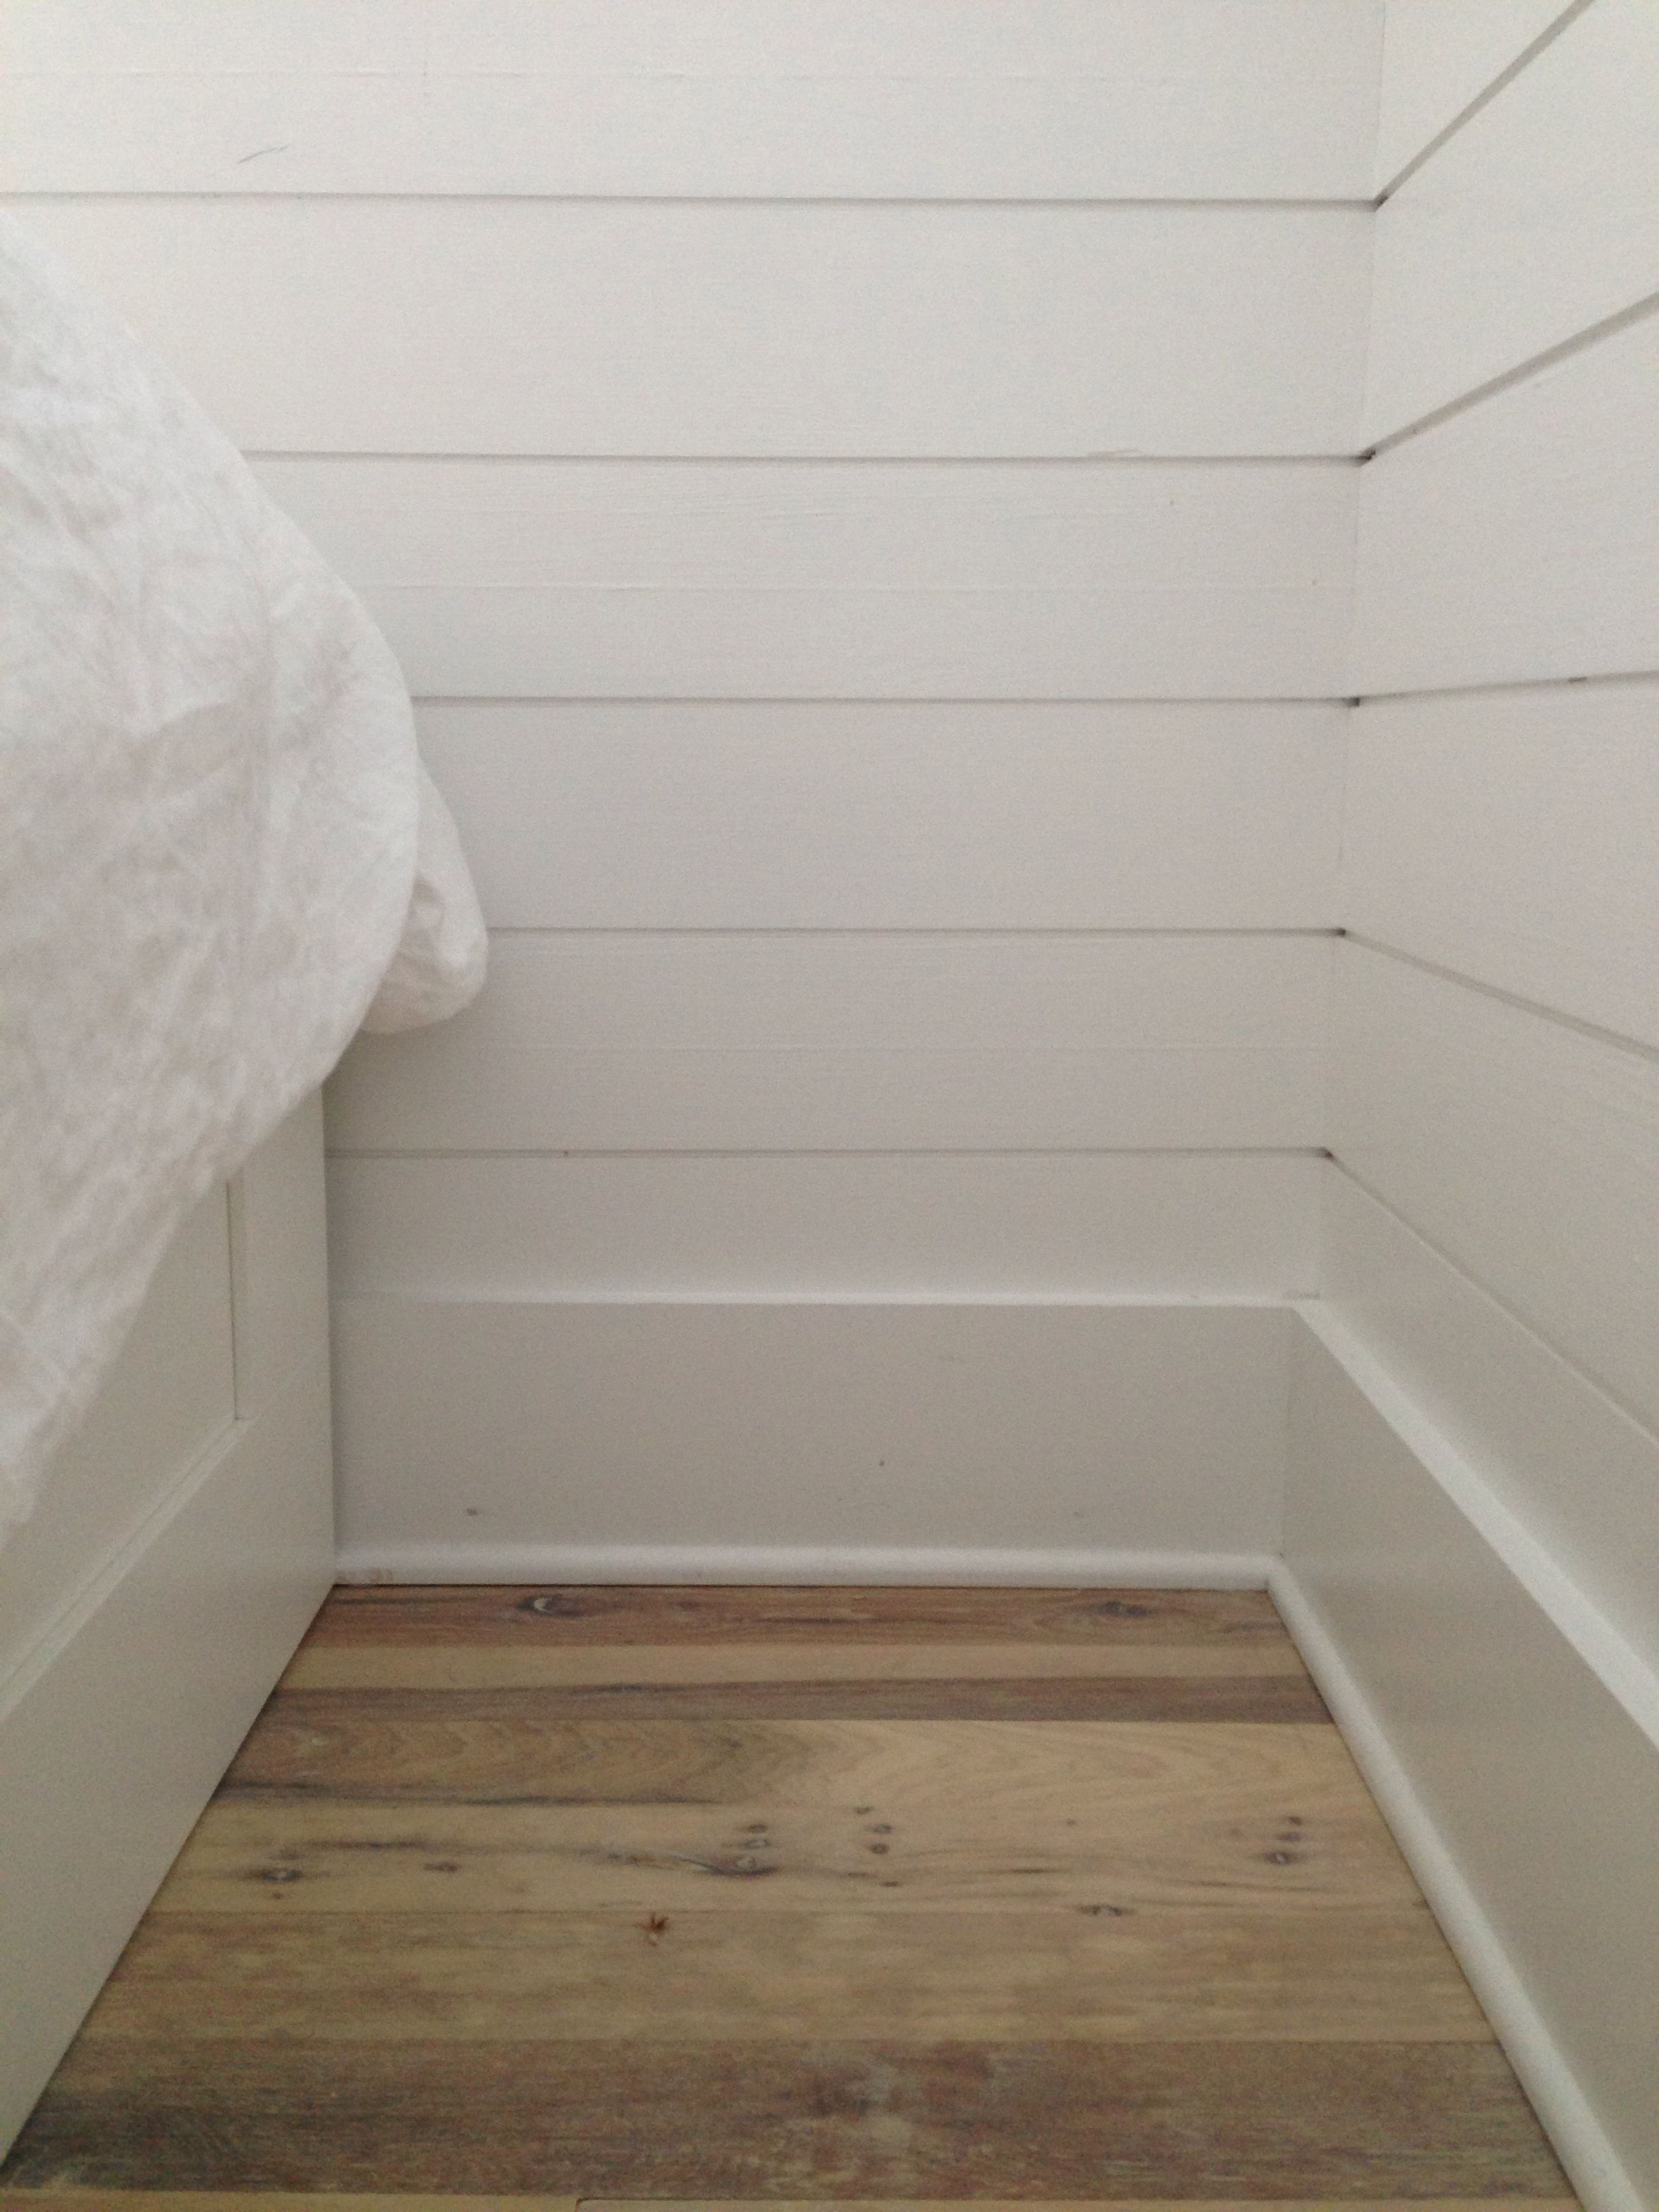 Tongue And Groove Light Floors Base Board White On White Floor Lights Tongue And Groove Baseboards